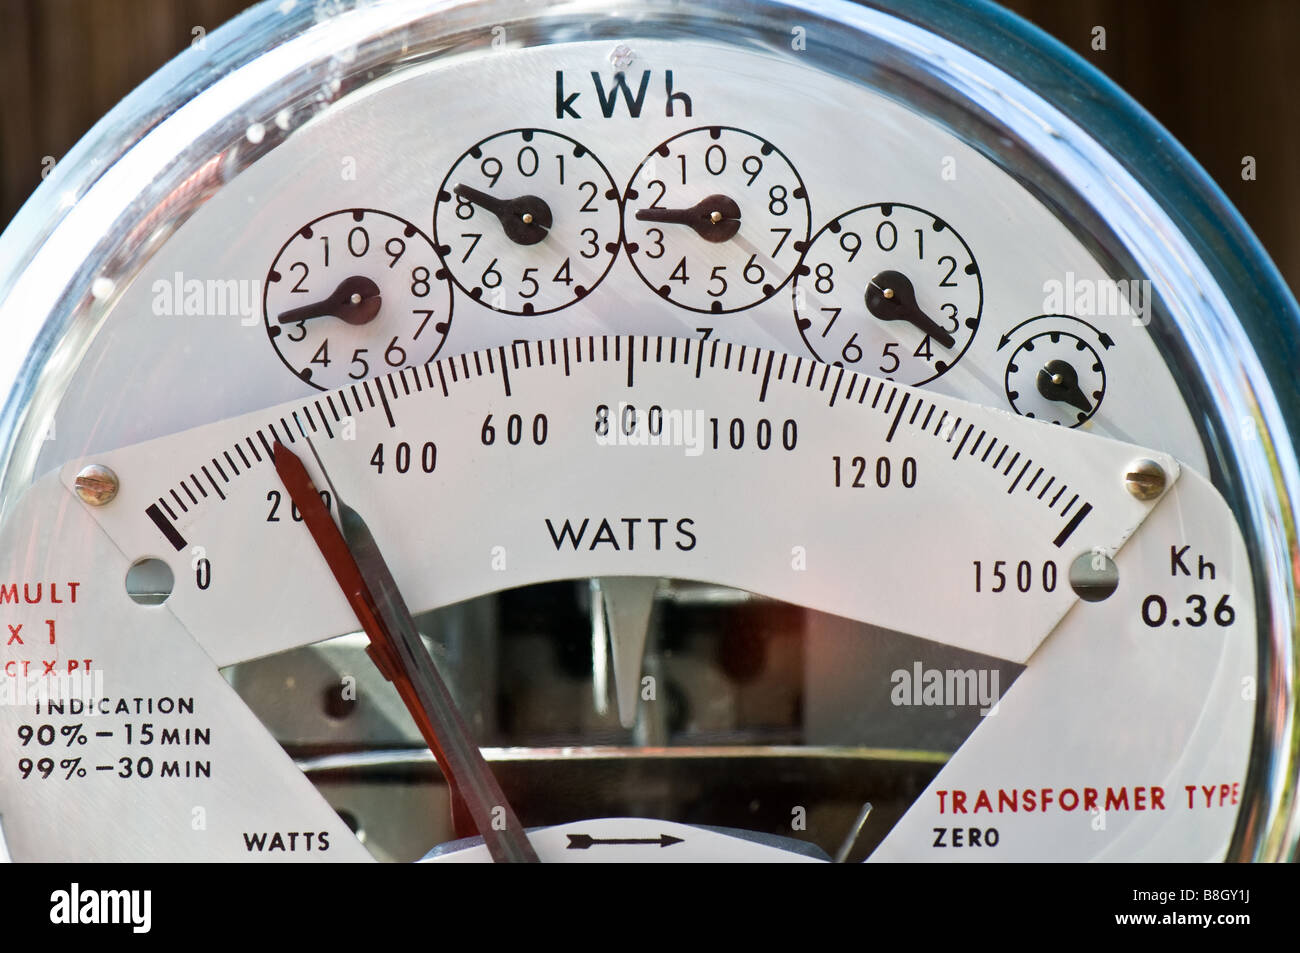 Dials measuring Kilo Watt Hours of electricity used. - Stock Image